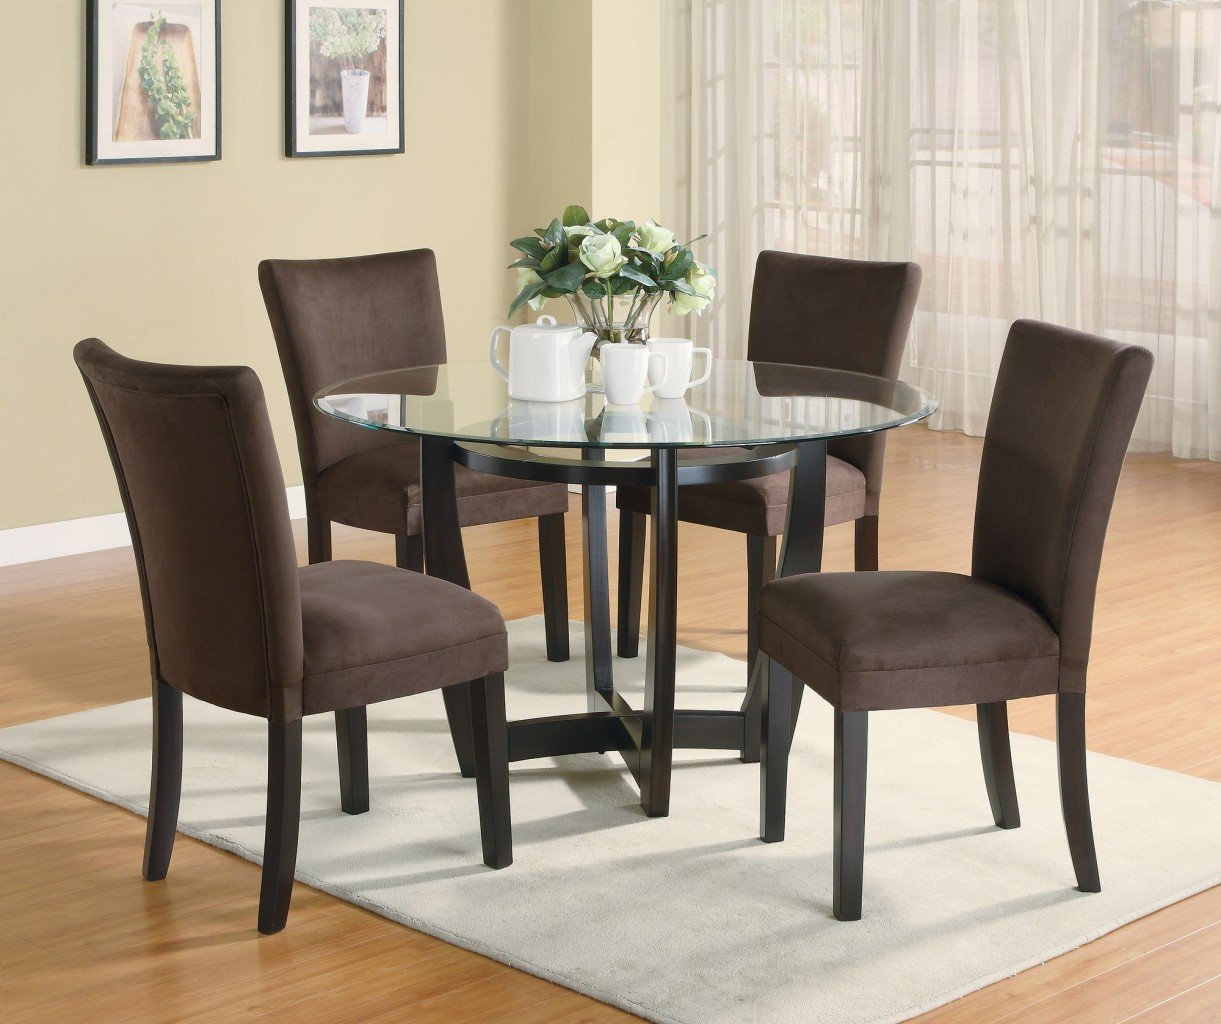 Cheap dining room table sets home furniture design for Pictures of dining room sets